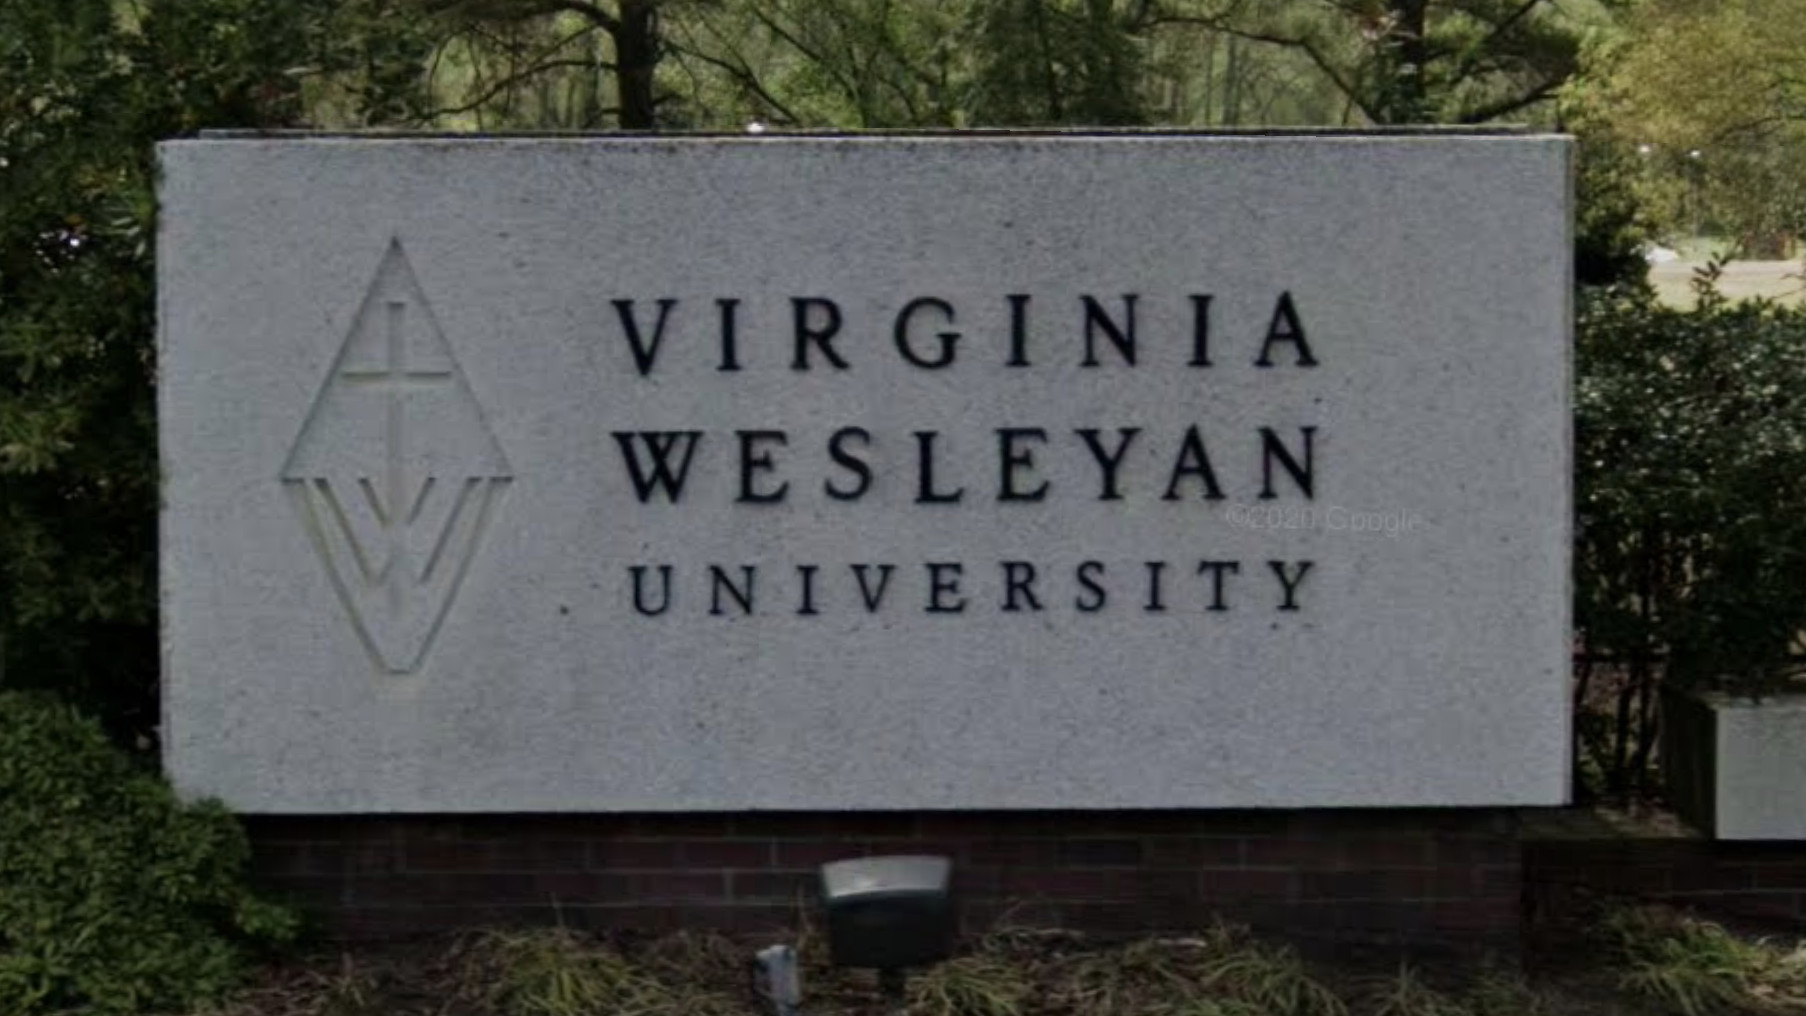 A Virginia Wesleyan University sign is seen in a Google Maps image.